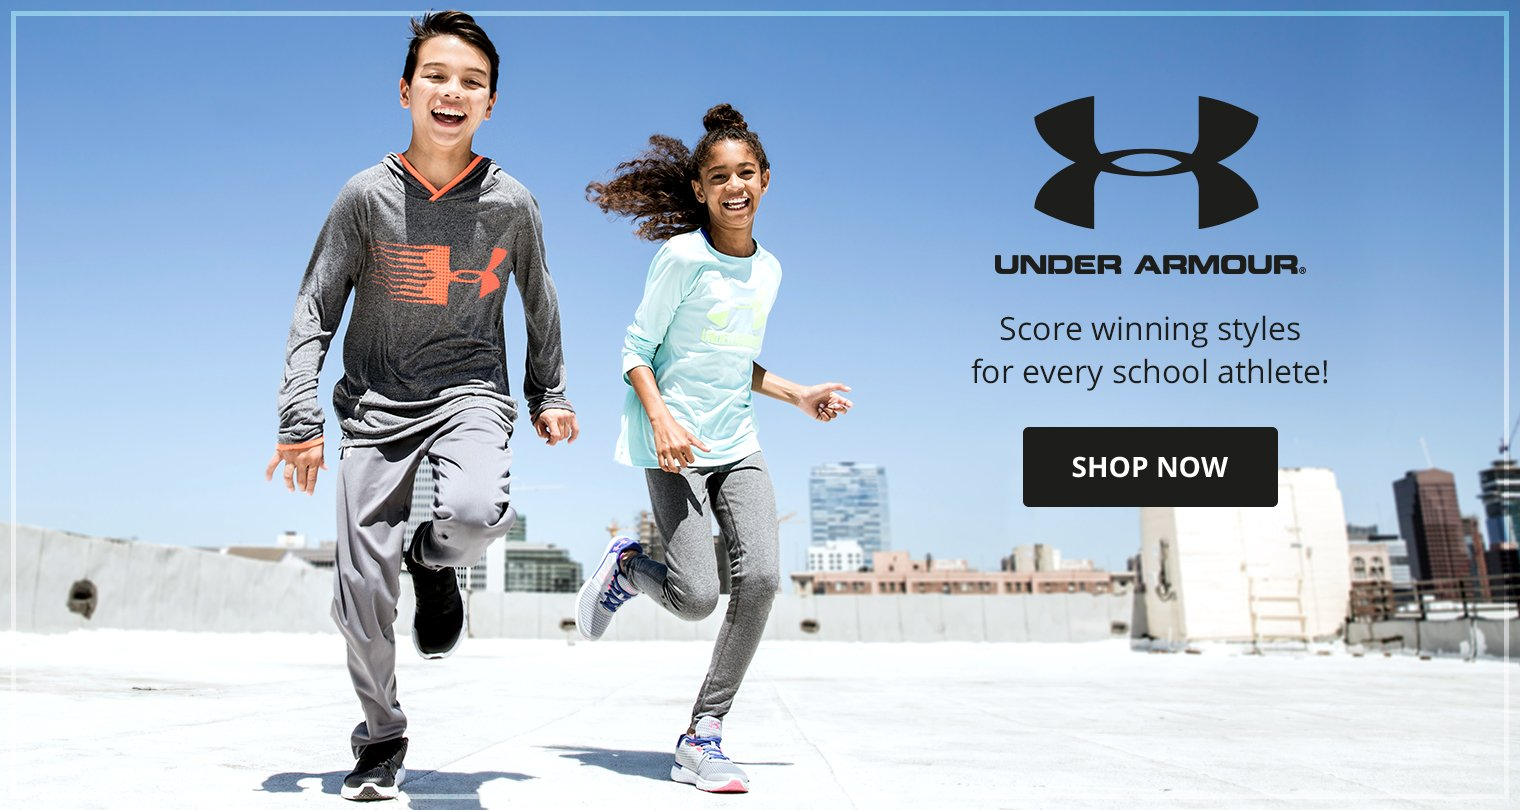 Image of a boy and girl running outside wearing Under Armour.